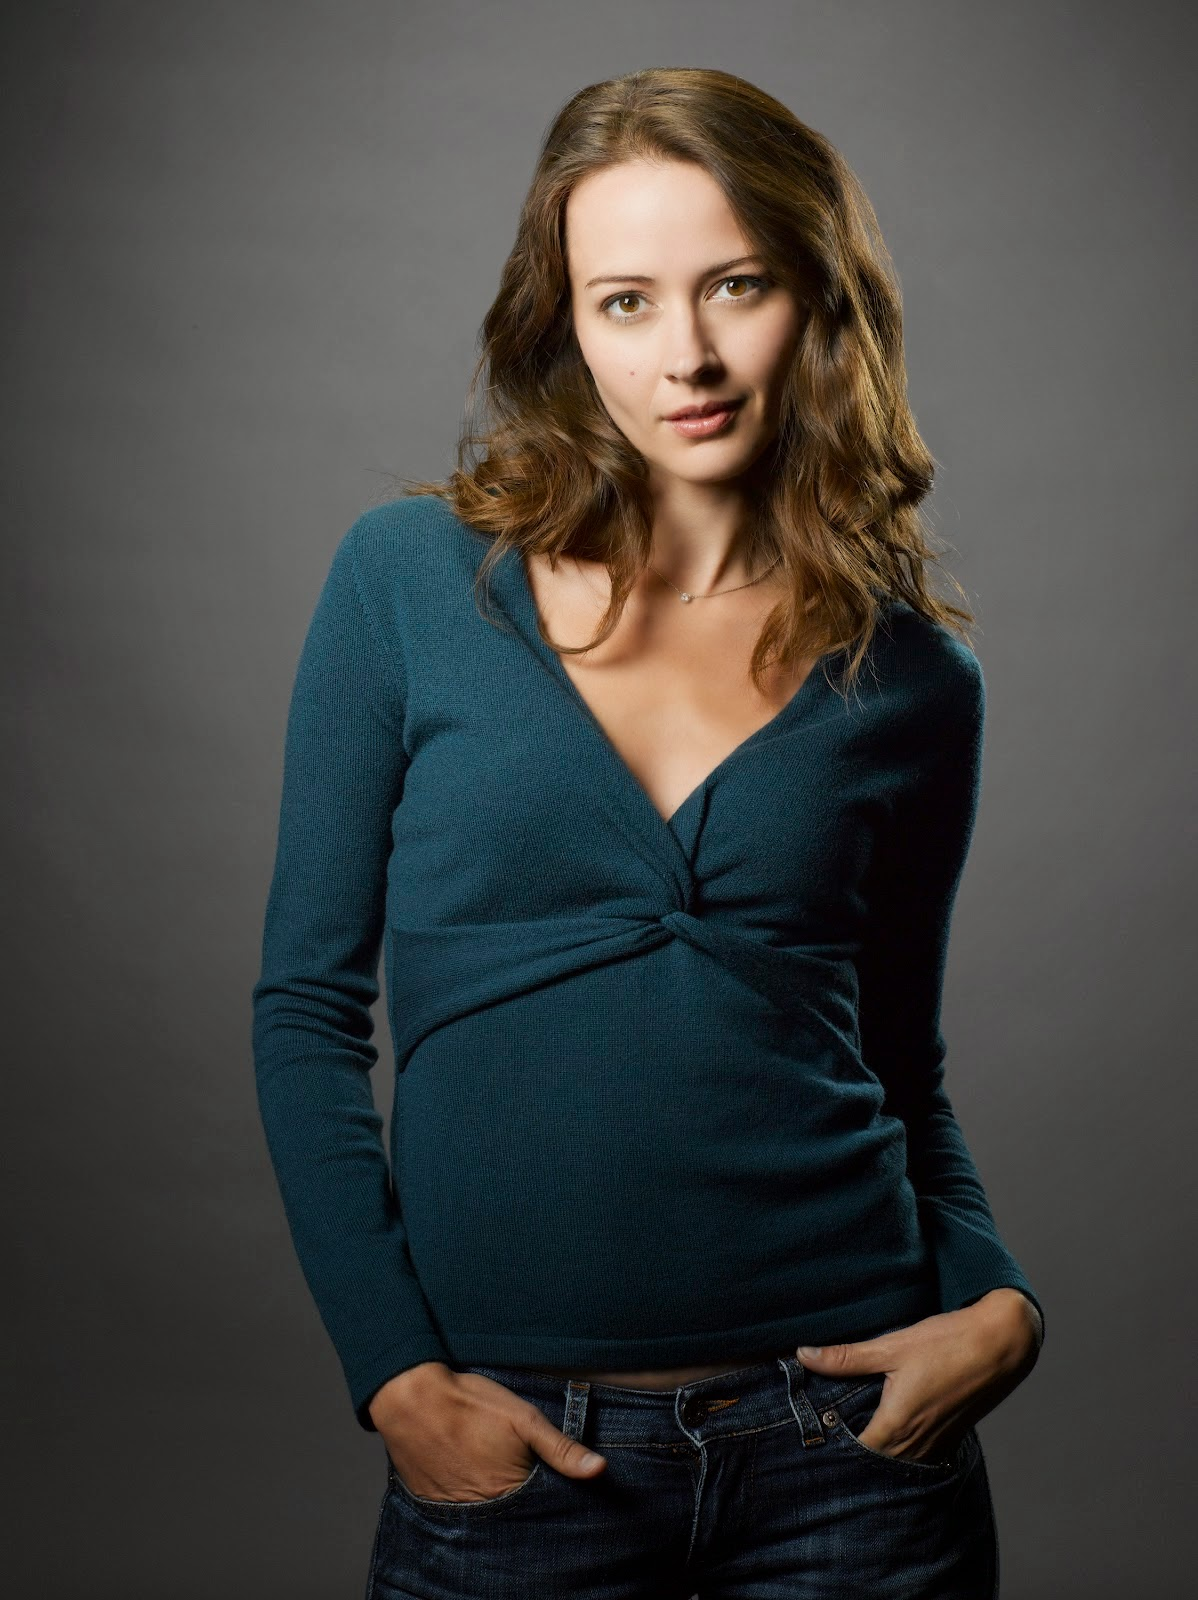 hollywood actress wallpaper: amy acker wallpapers